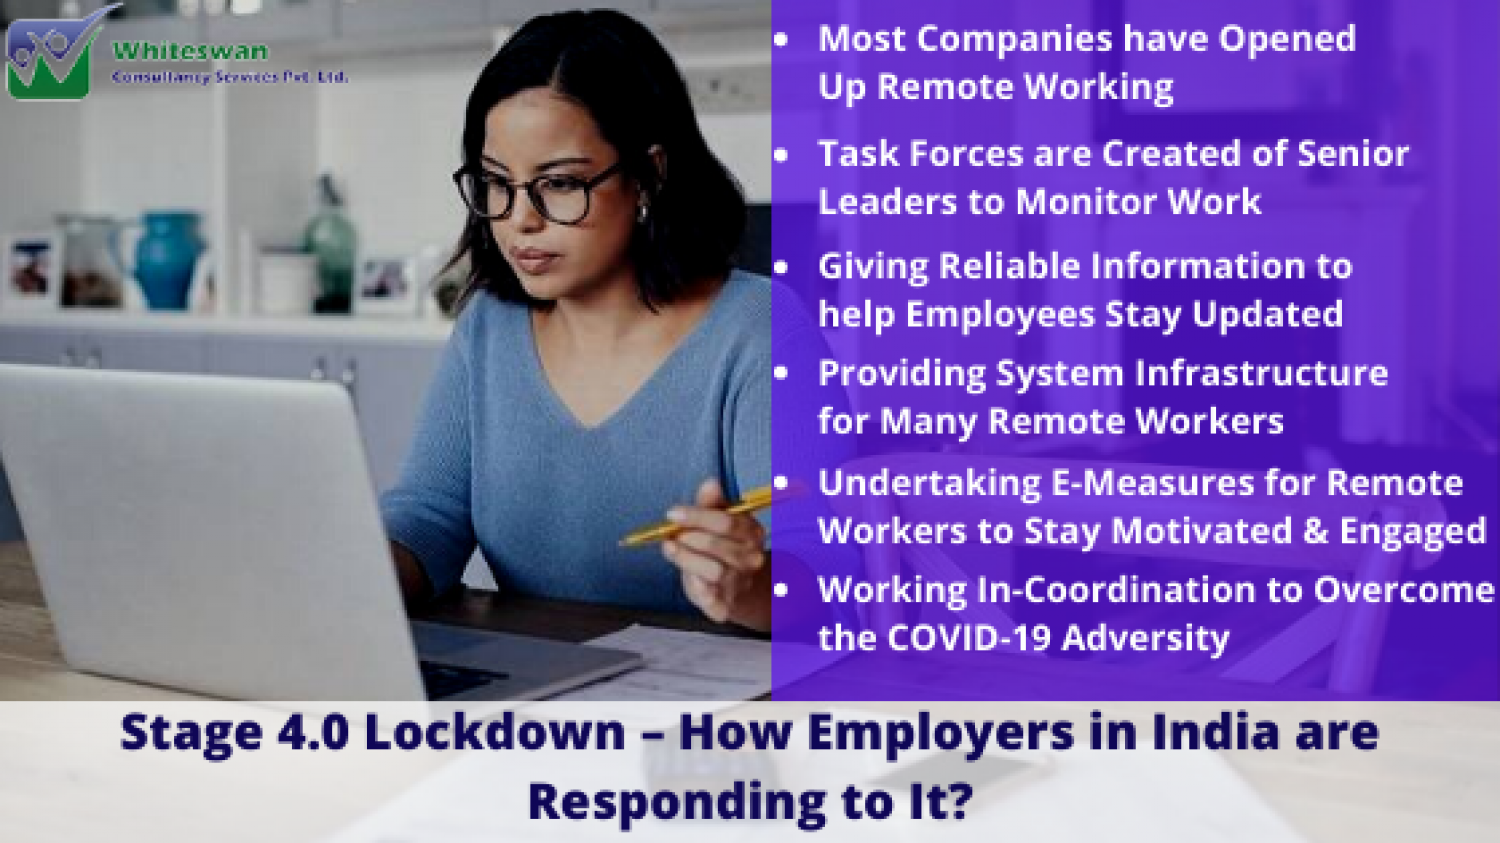 Stage 4.0 Lockdown – How Employers in India are Responding to It? Infographic